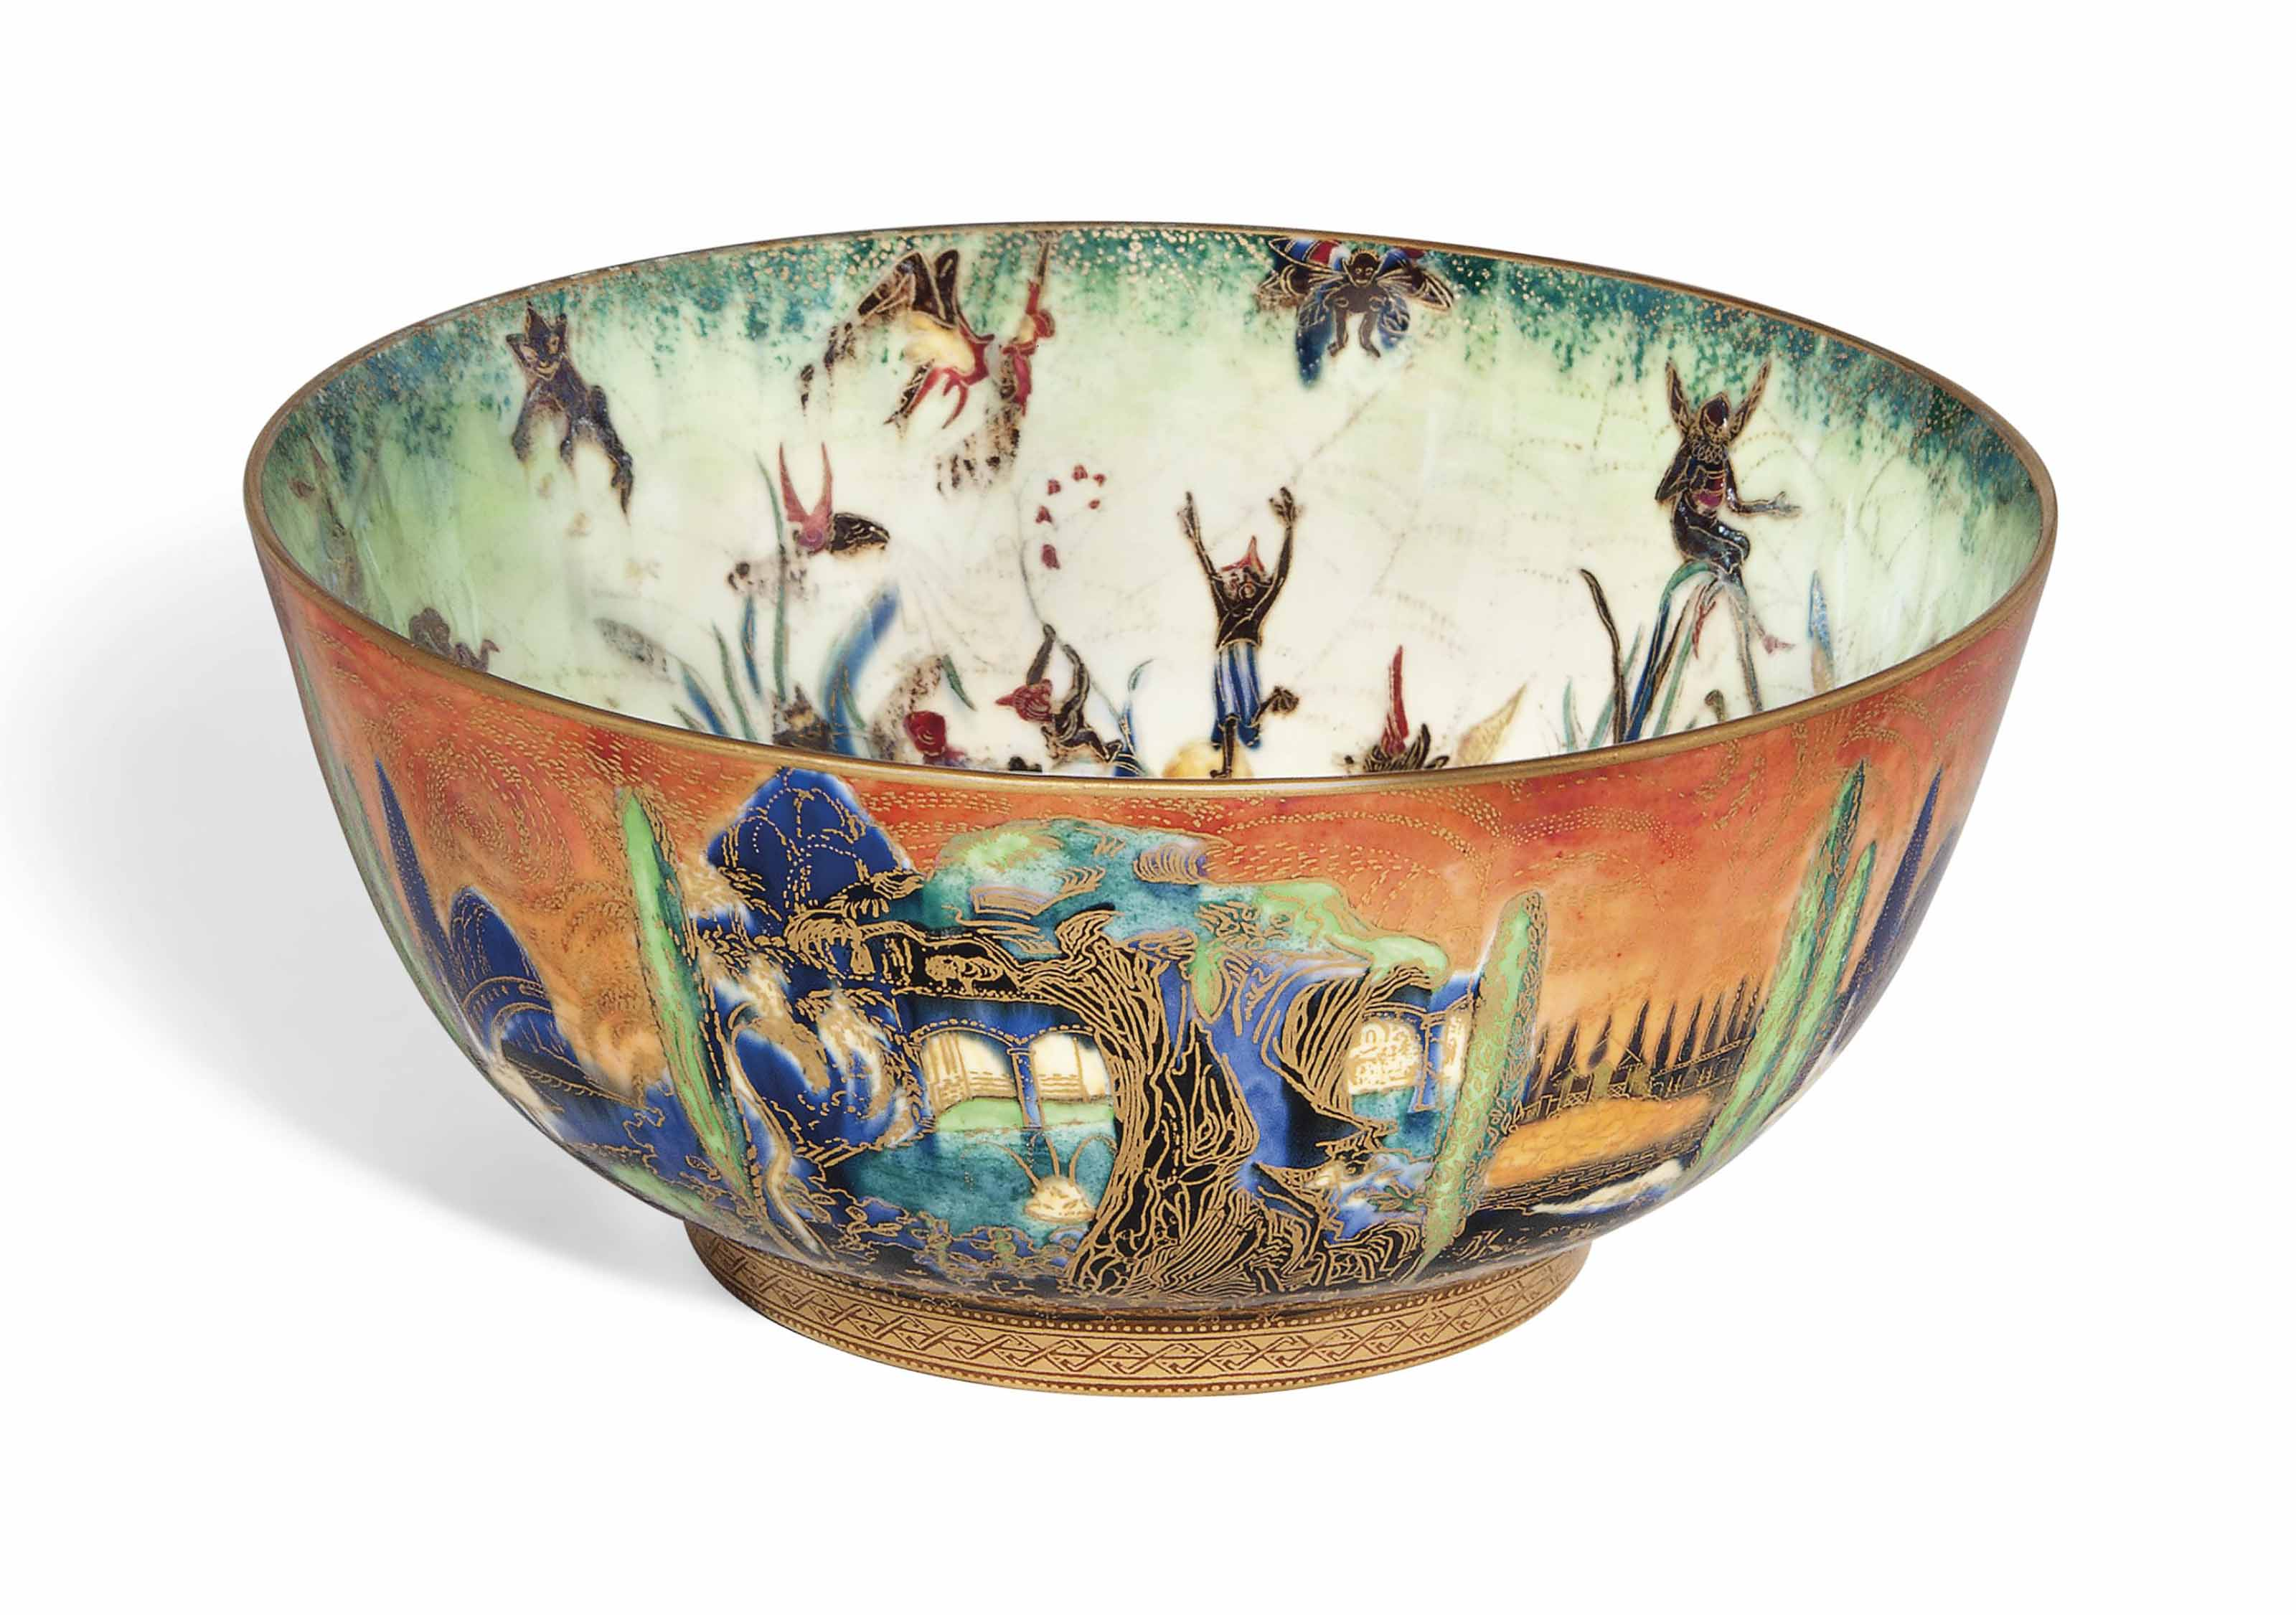 A WEDGWOOD FAIRYLAND LUSTRE 'POPLAR TREES AND FLAME' IMPERIAL CERAMIC BOWL DESIGNED BY DAISY MAKEIG-JONES